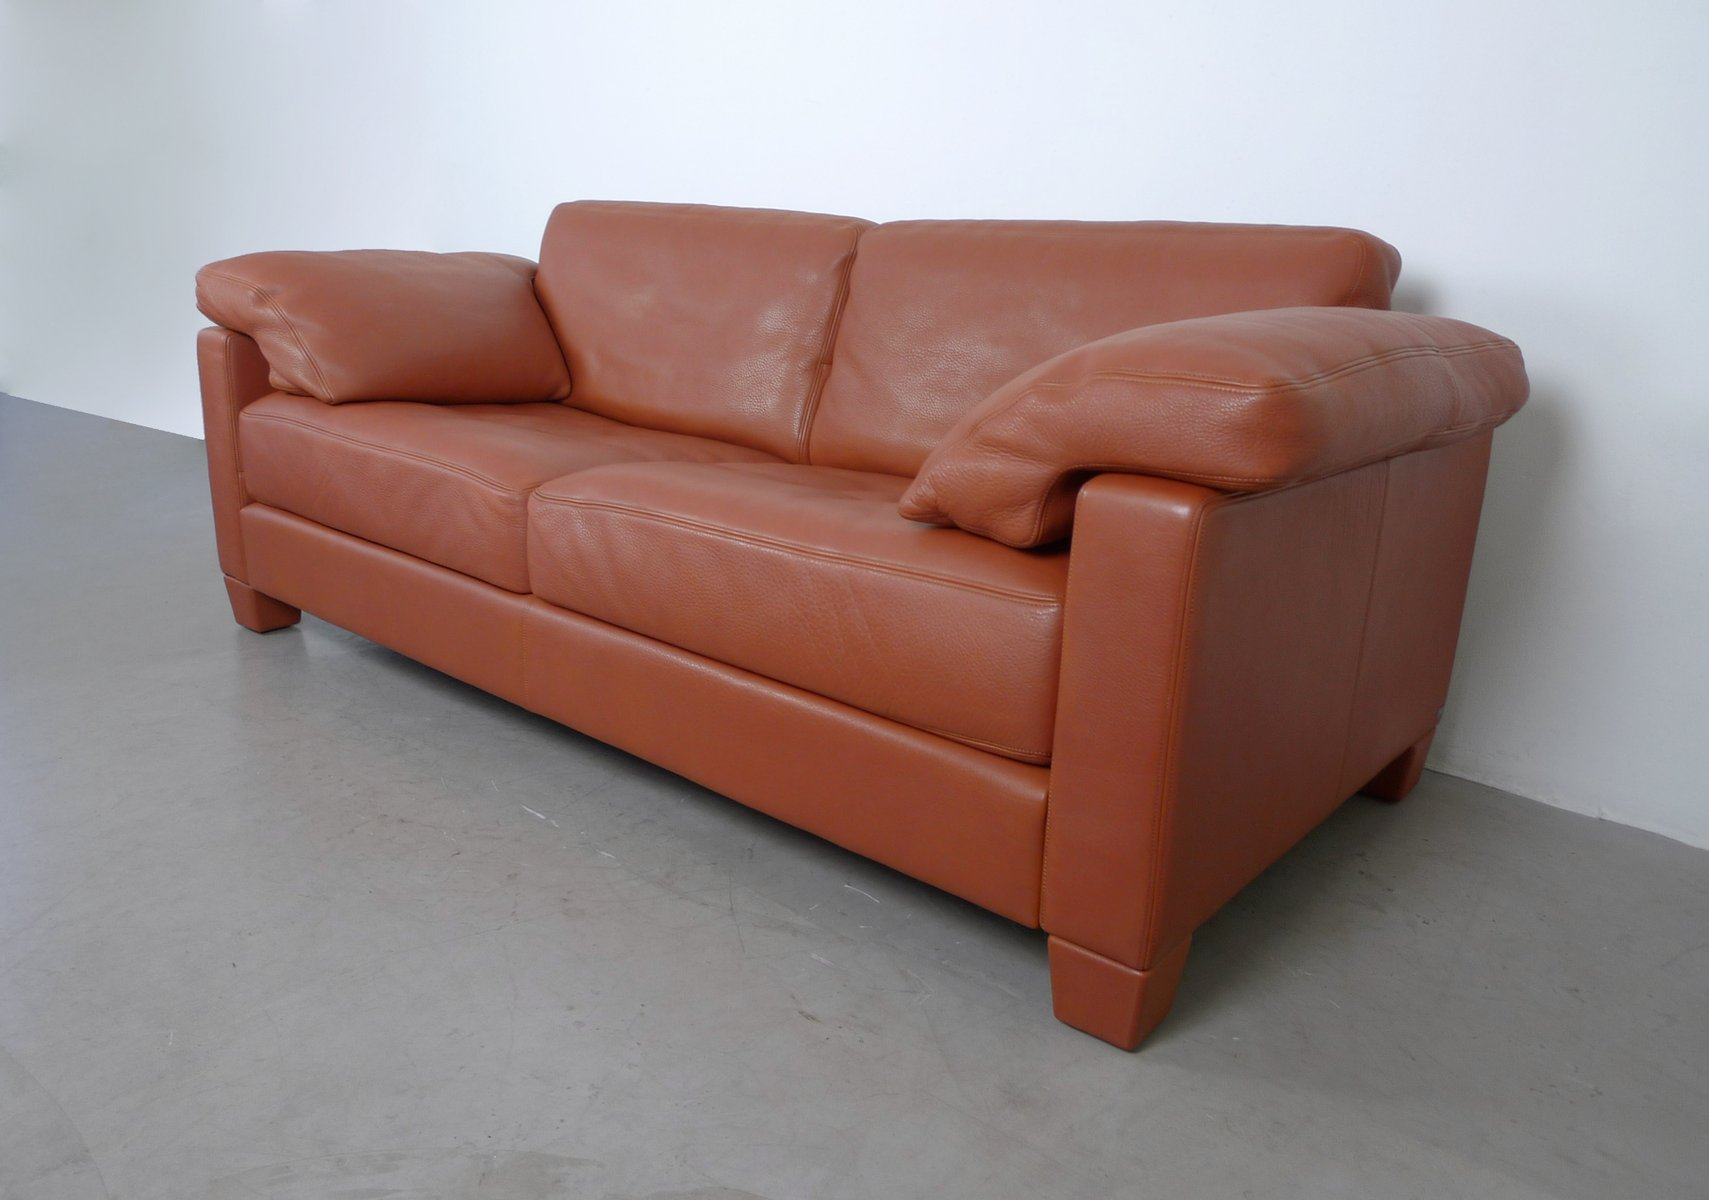 cognac leather ds 17 sofa from de sede 1990s for sale at pamono. Black Bedroom Furniture Sets. Home Design Ideas